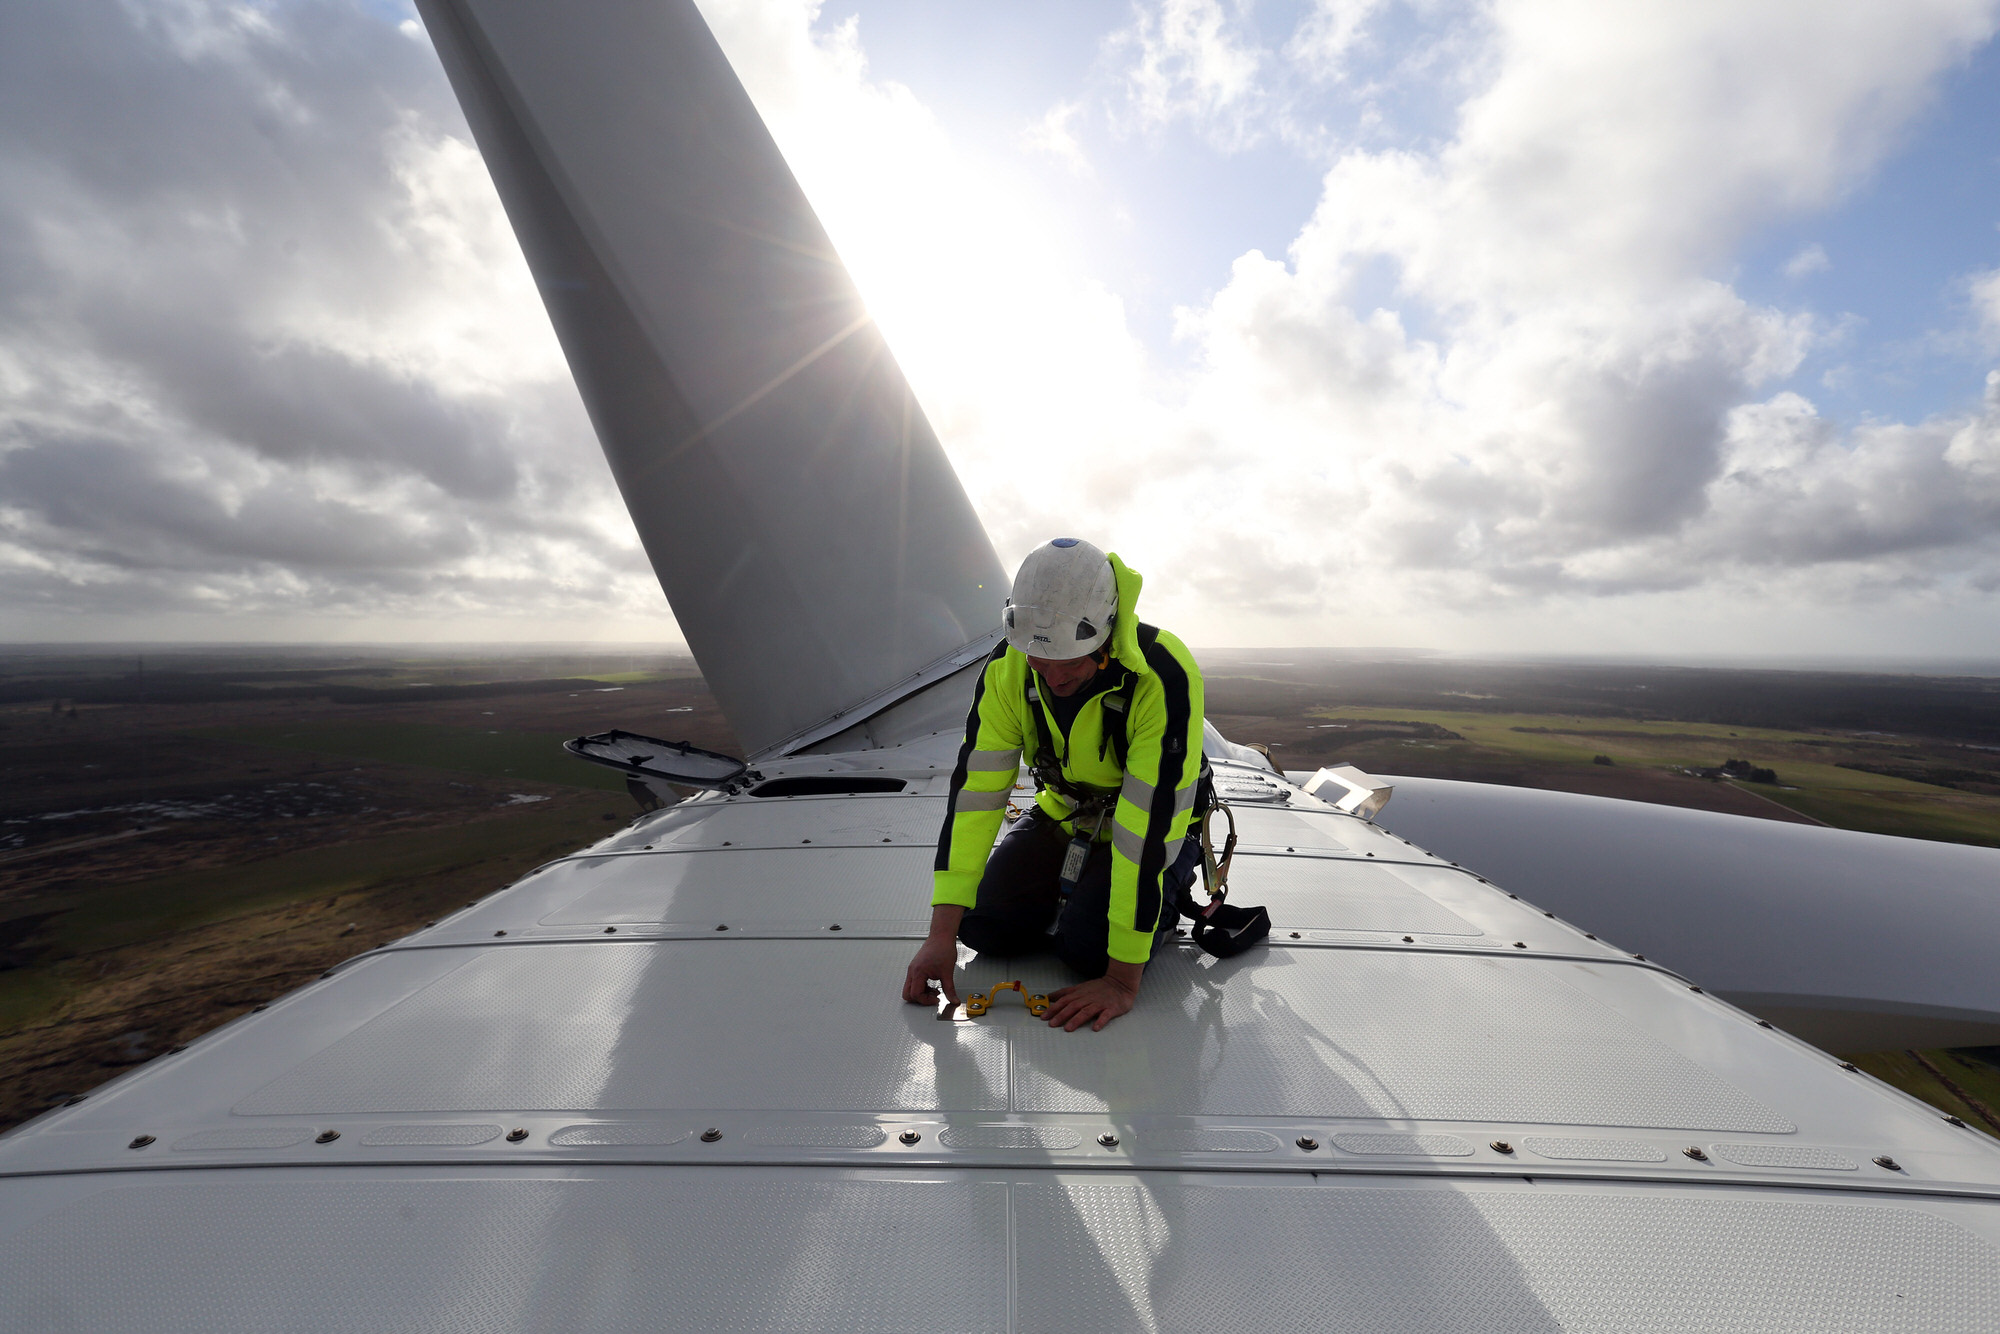 "An employee checks a cable on the nacelle of a Vestas A/S V136 wind turbine during operational testing at the Danish National Test Center for Large Wind Turbines in Osterild, Denmark, on Monday, April 18, 2016. ""The doubling of turbine size this decade will allow wind farms in 2020 to use half the number of turbines compared to 2010,"" said Tom Harries, an industry analyst at Bloomberg New Energy Finance. Photographer: Chris Ratcliffe/Bloomberg"